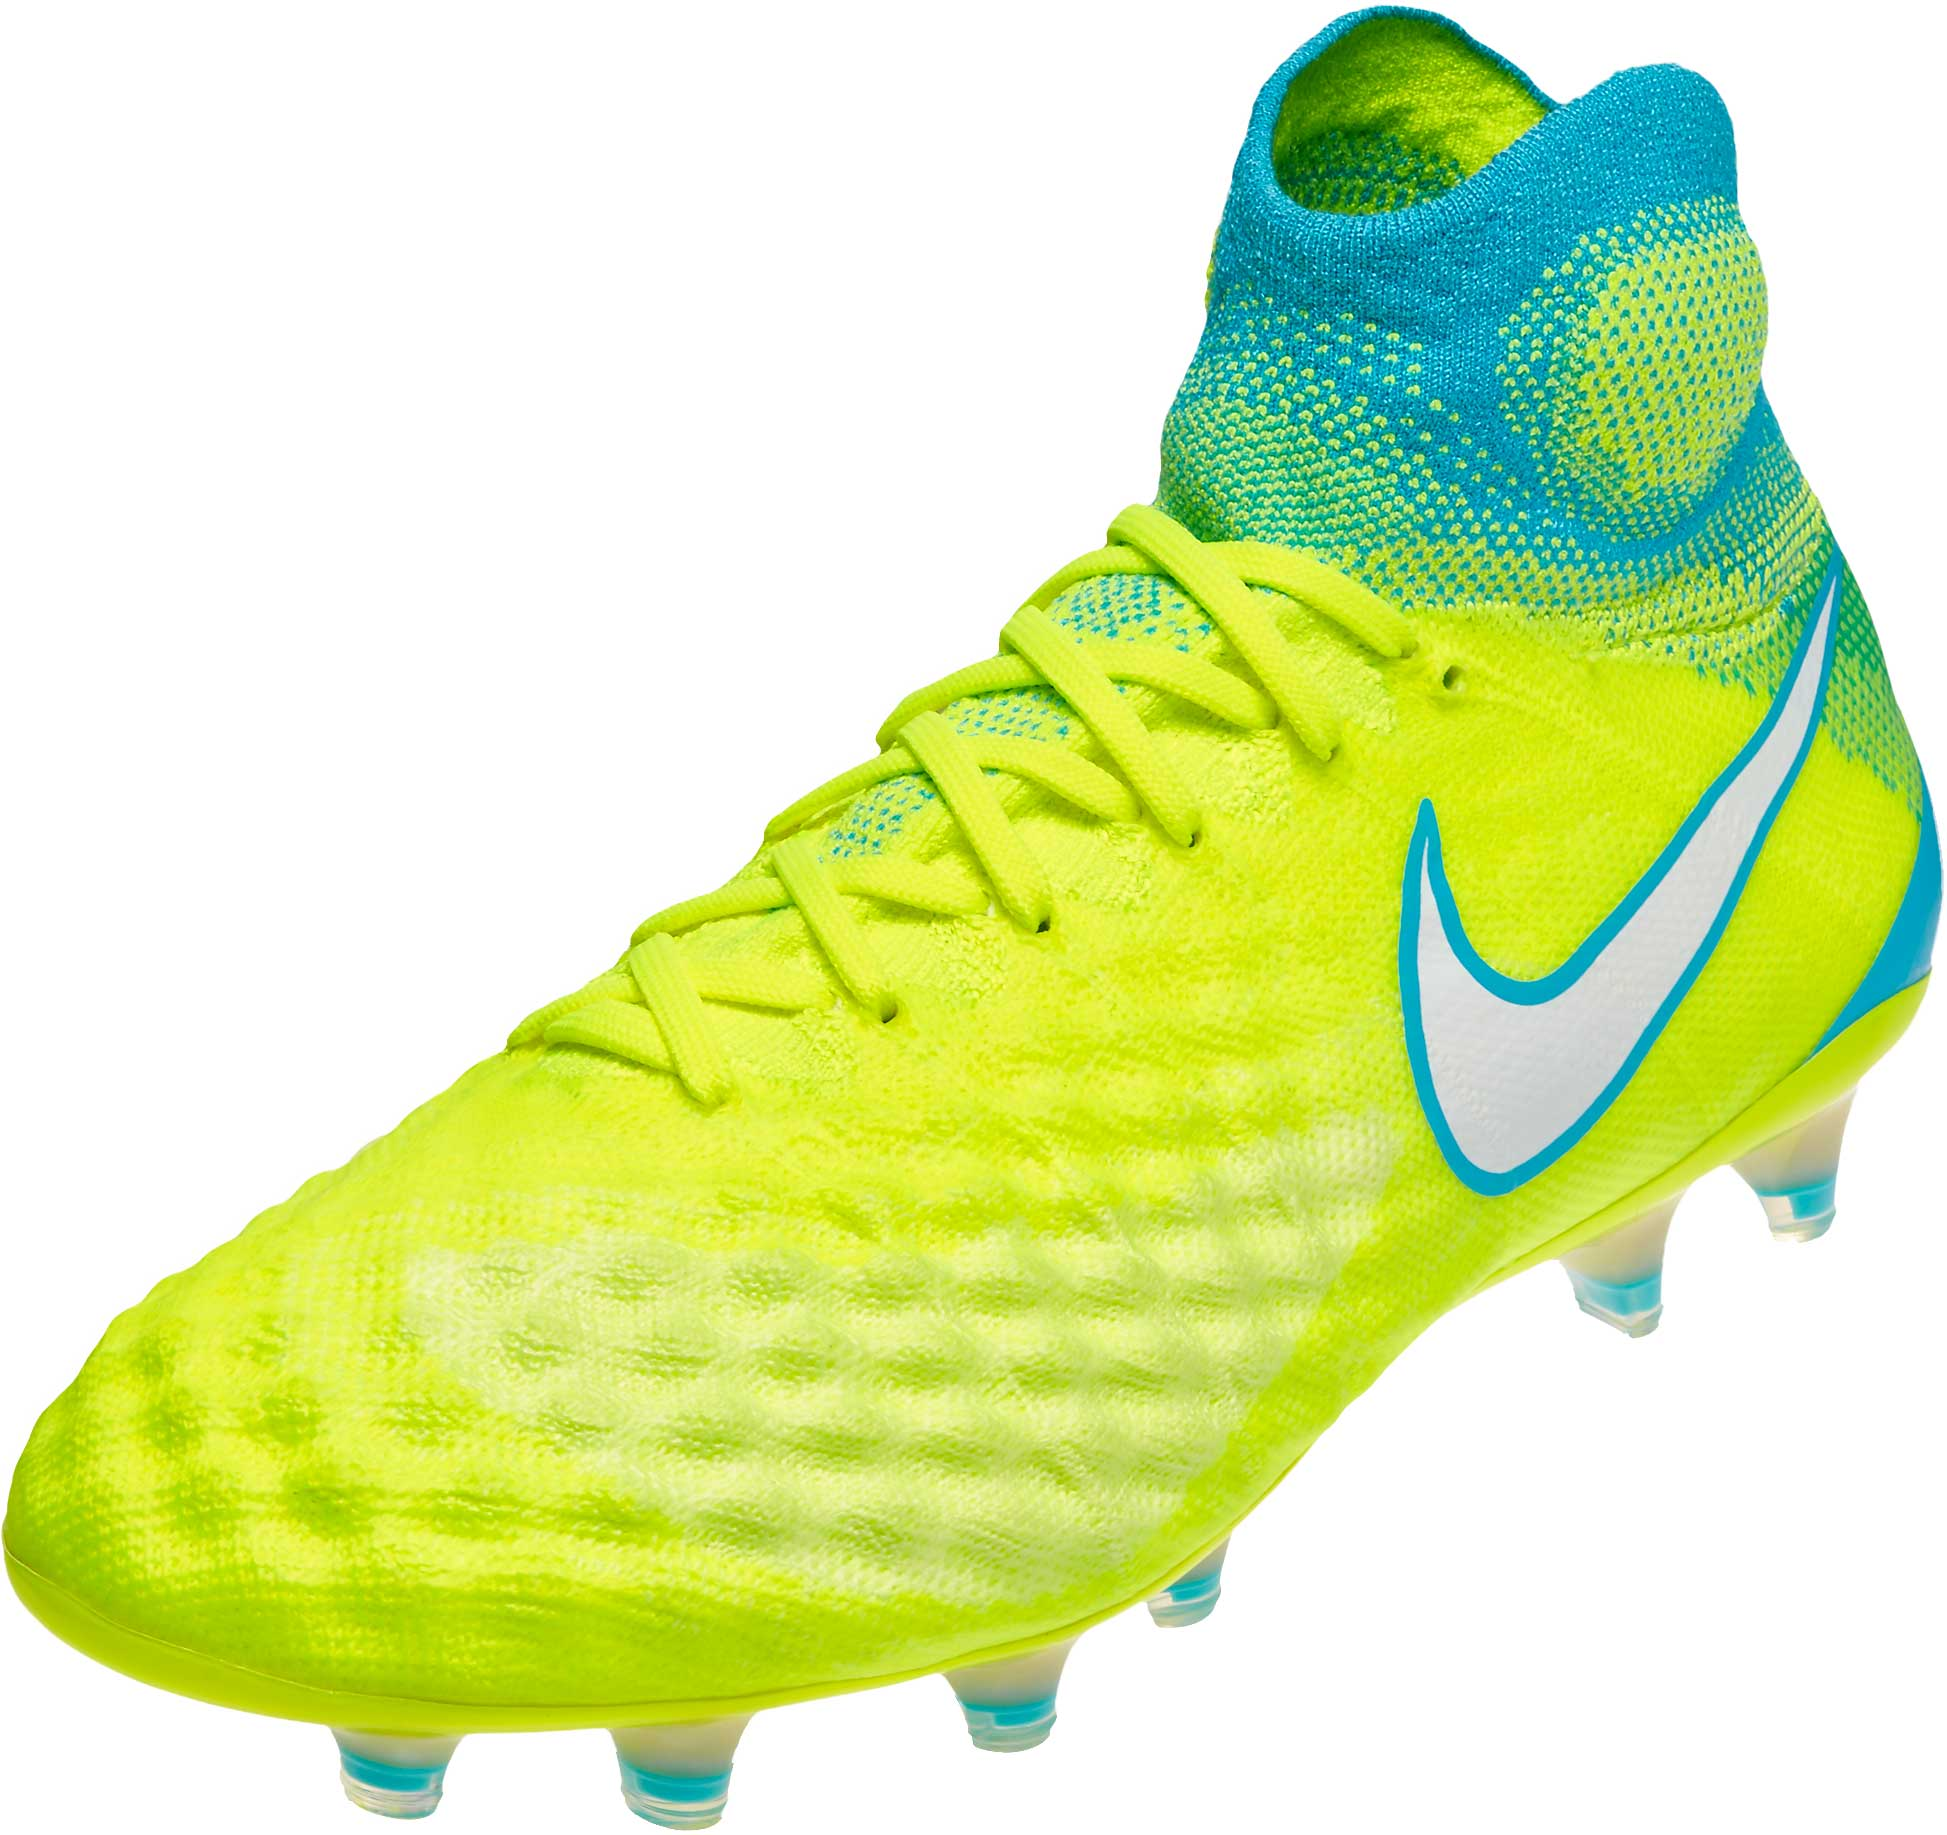 5e57182e1a61 release date nike magista womens soccer cleats quickly fe638 f61d0